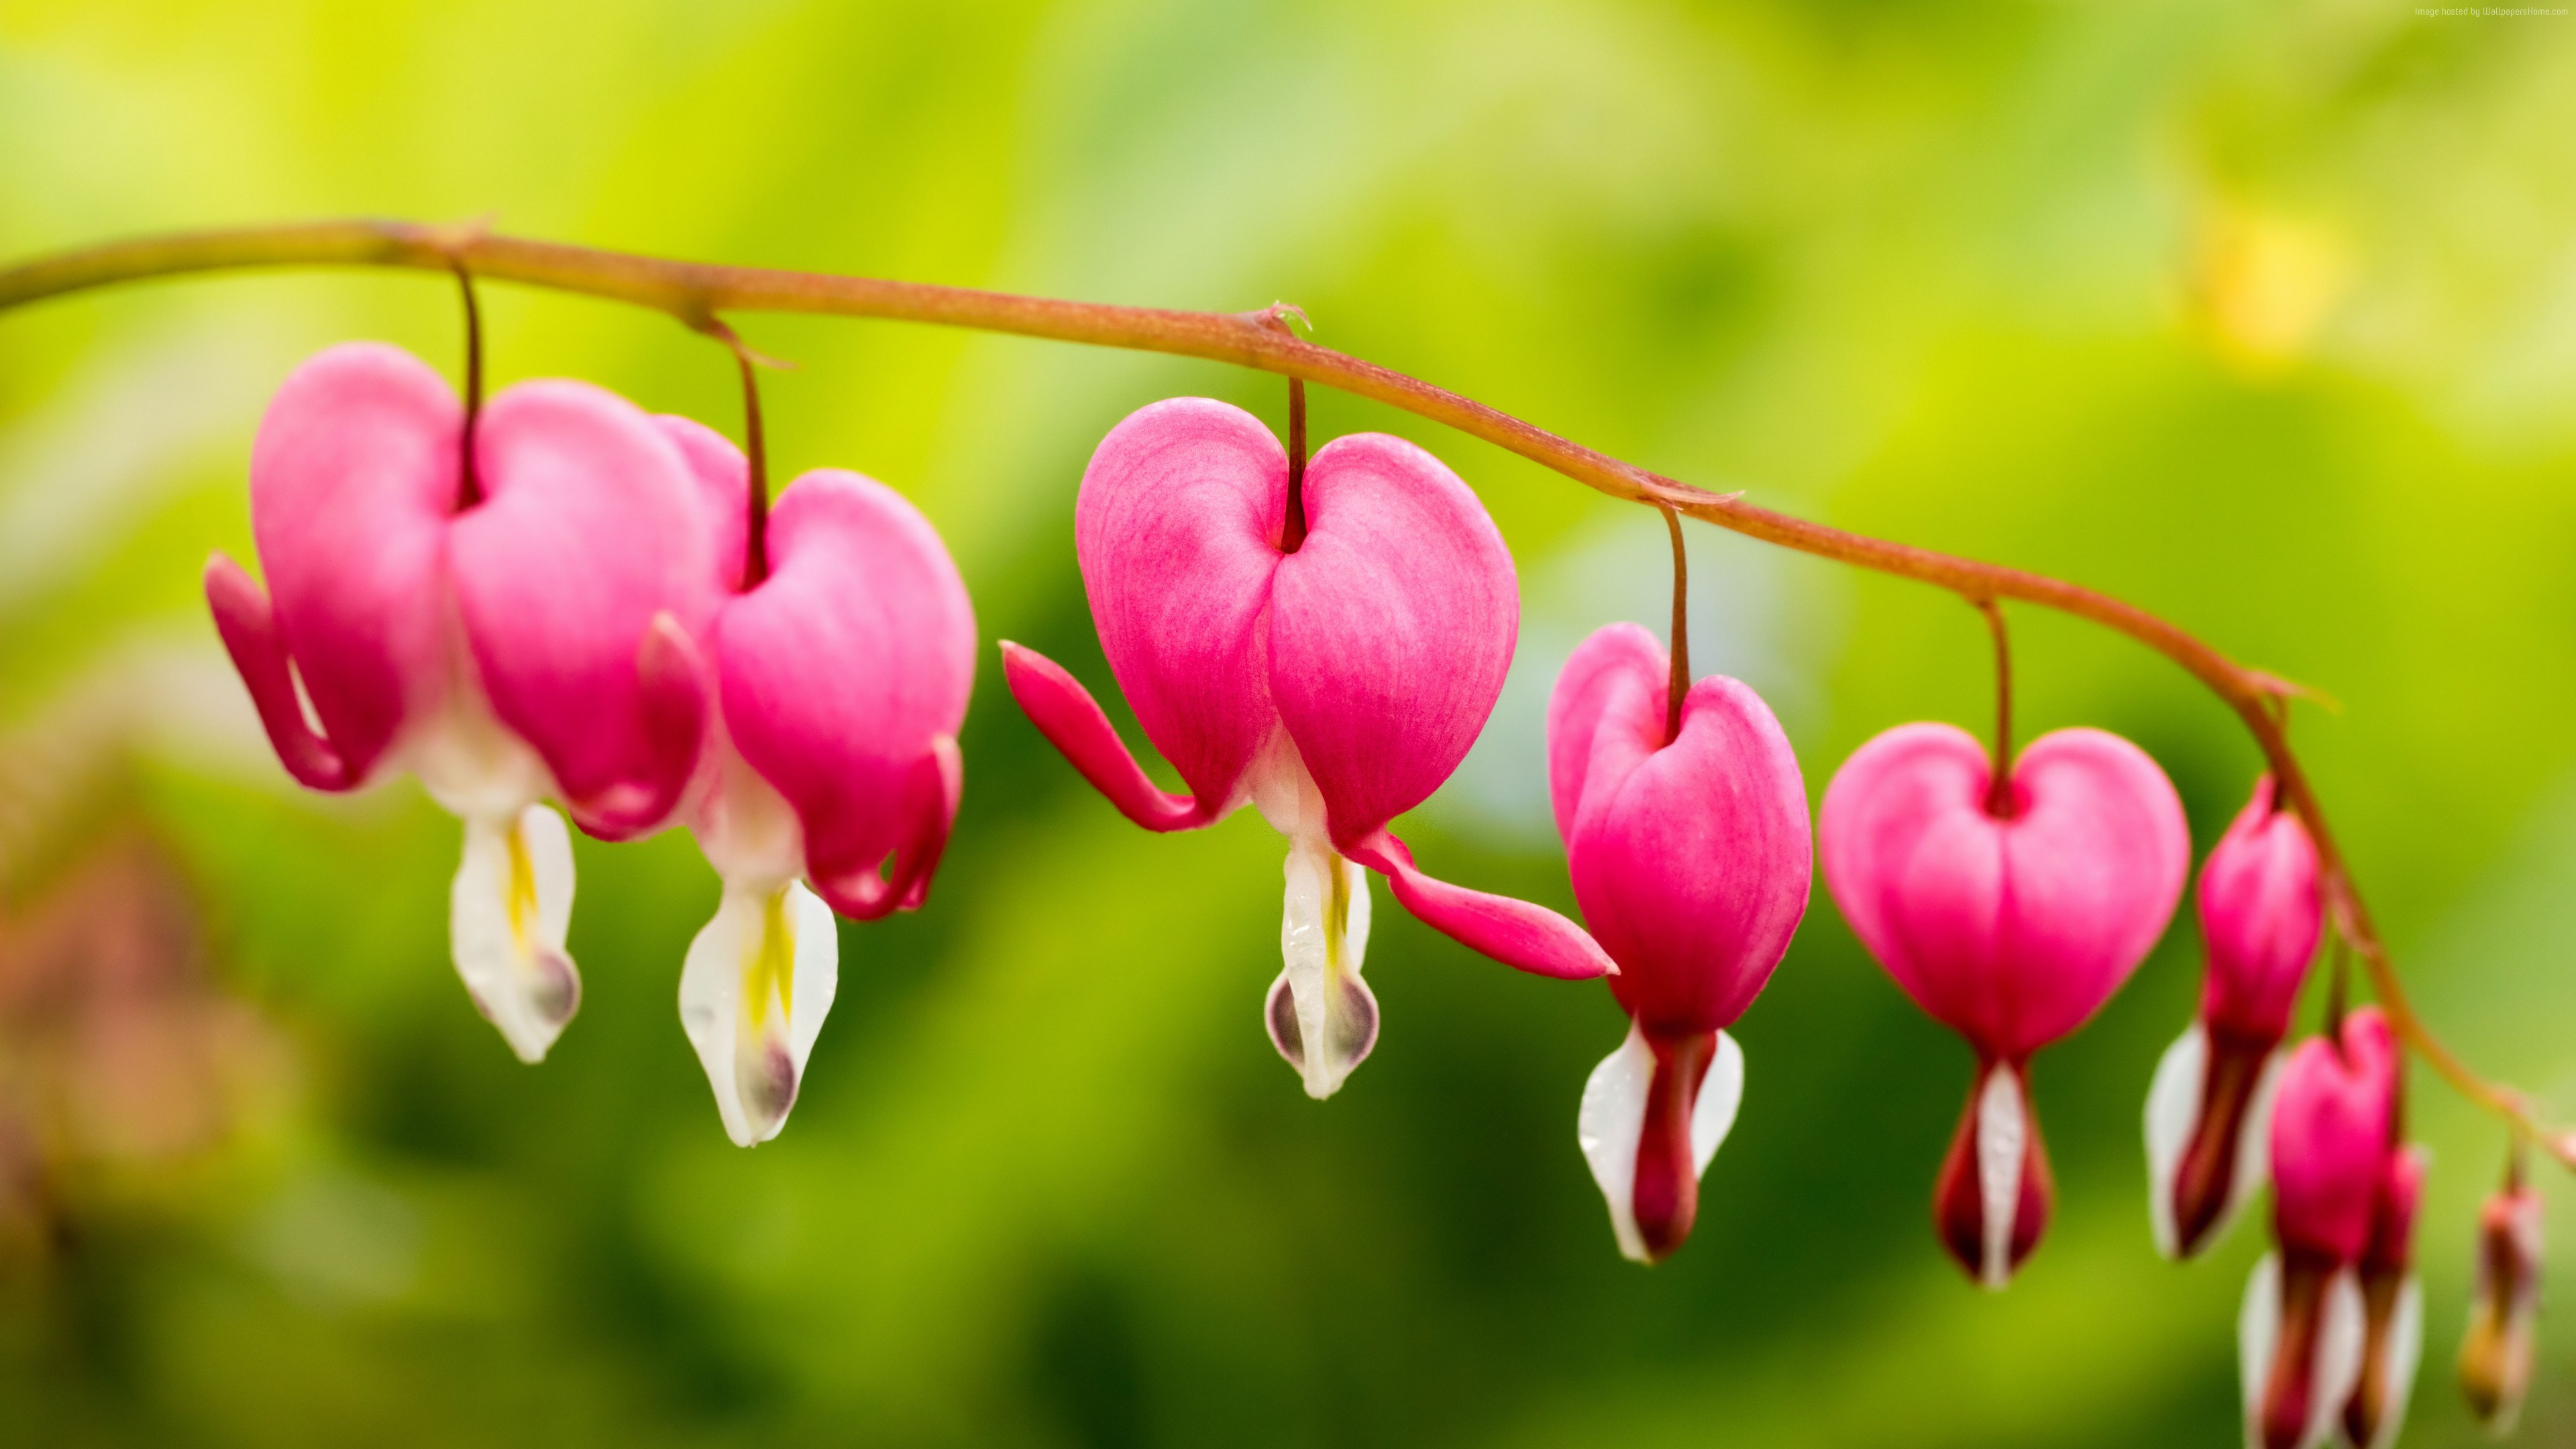 Wallpaper bleeding hearts, flowers, 5k, Nature